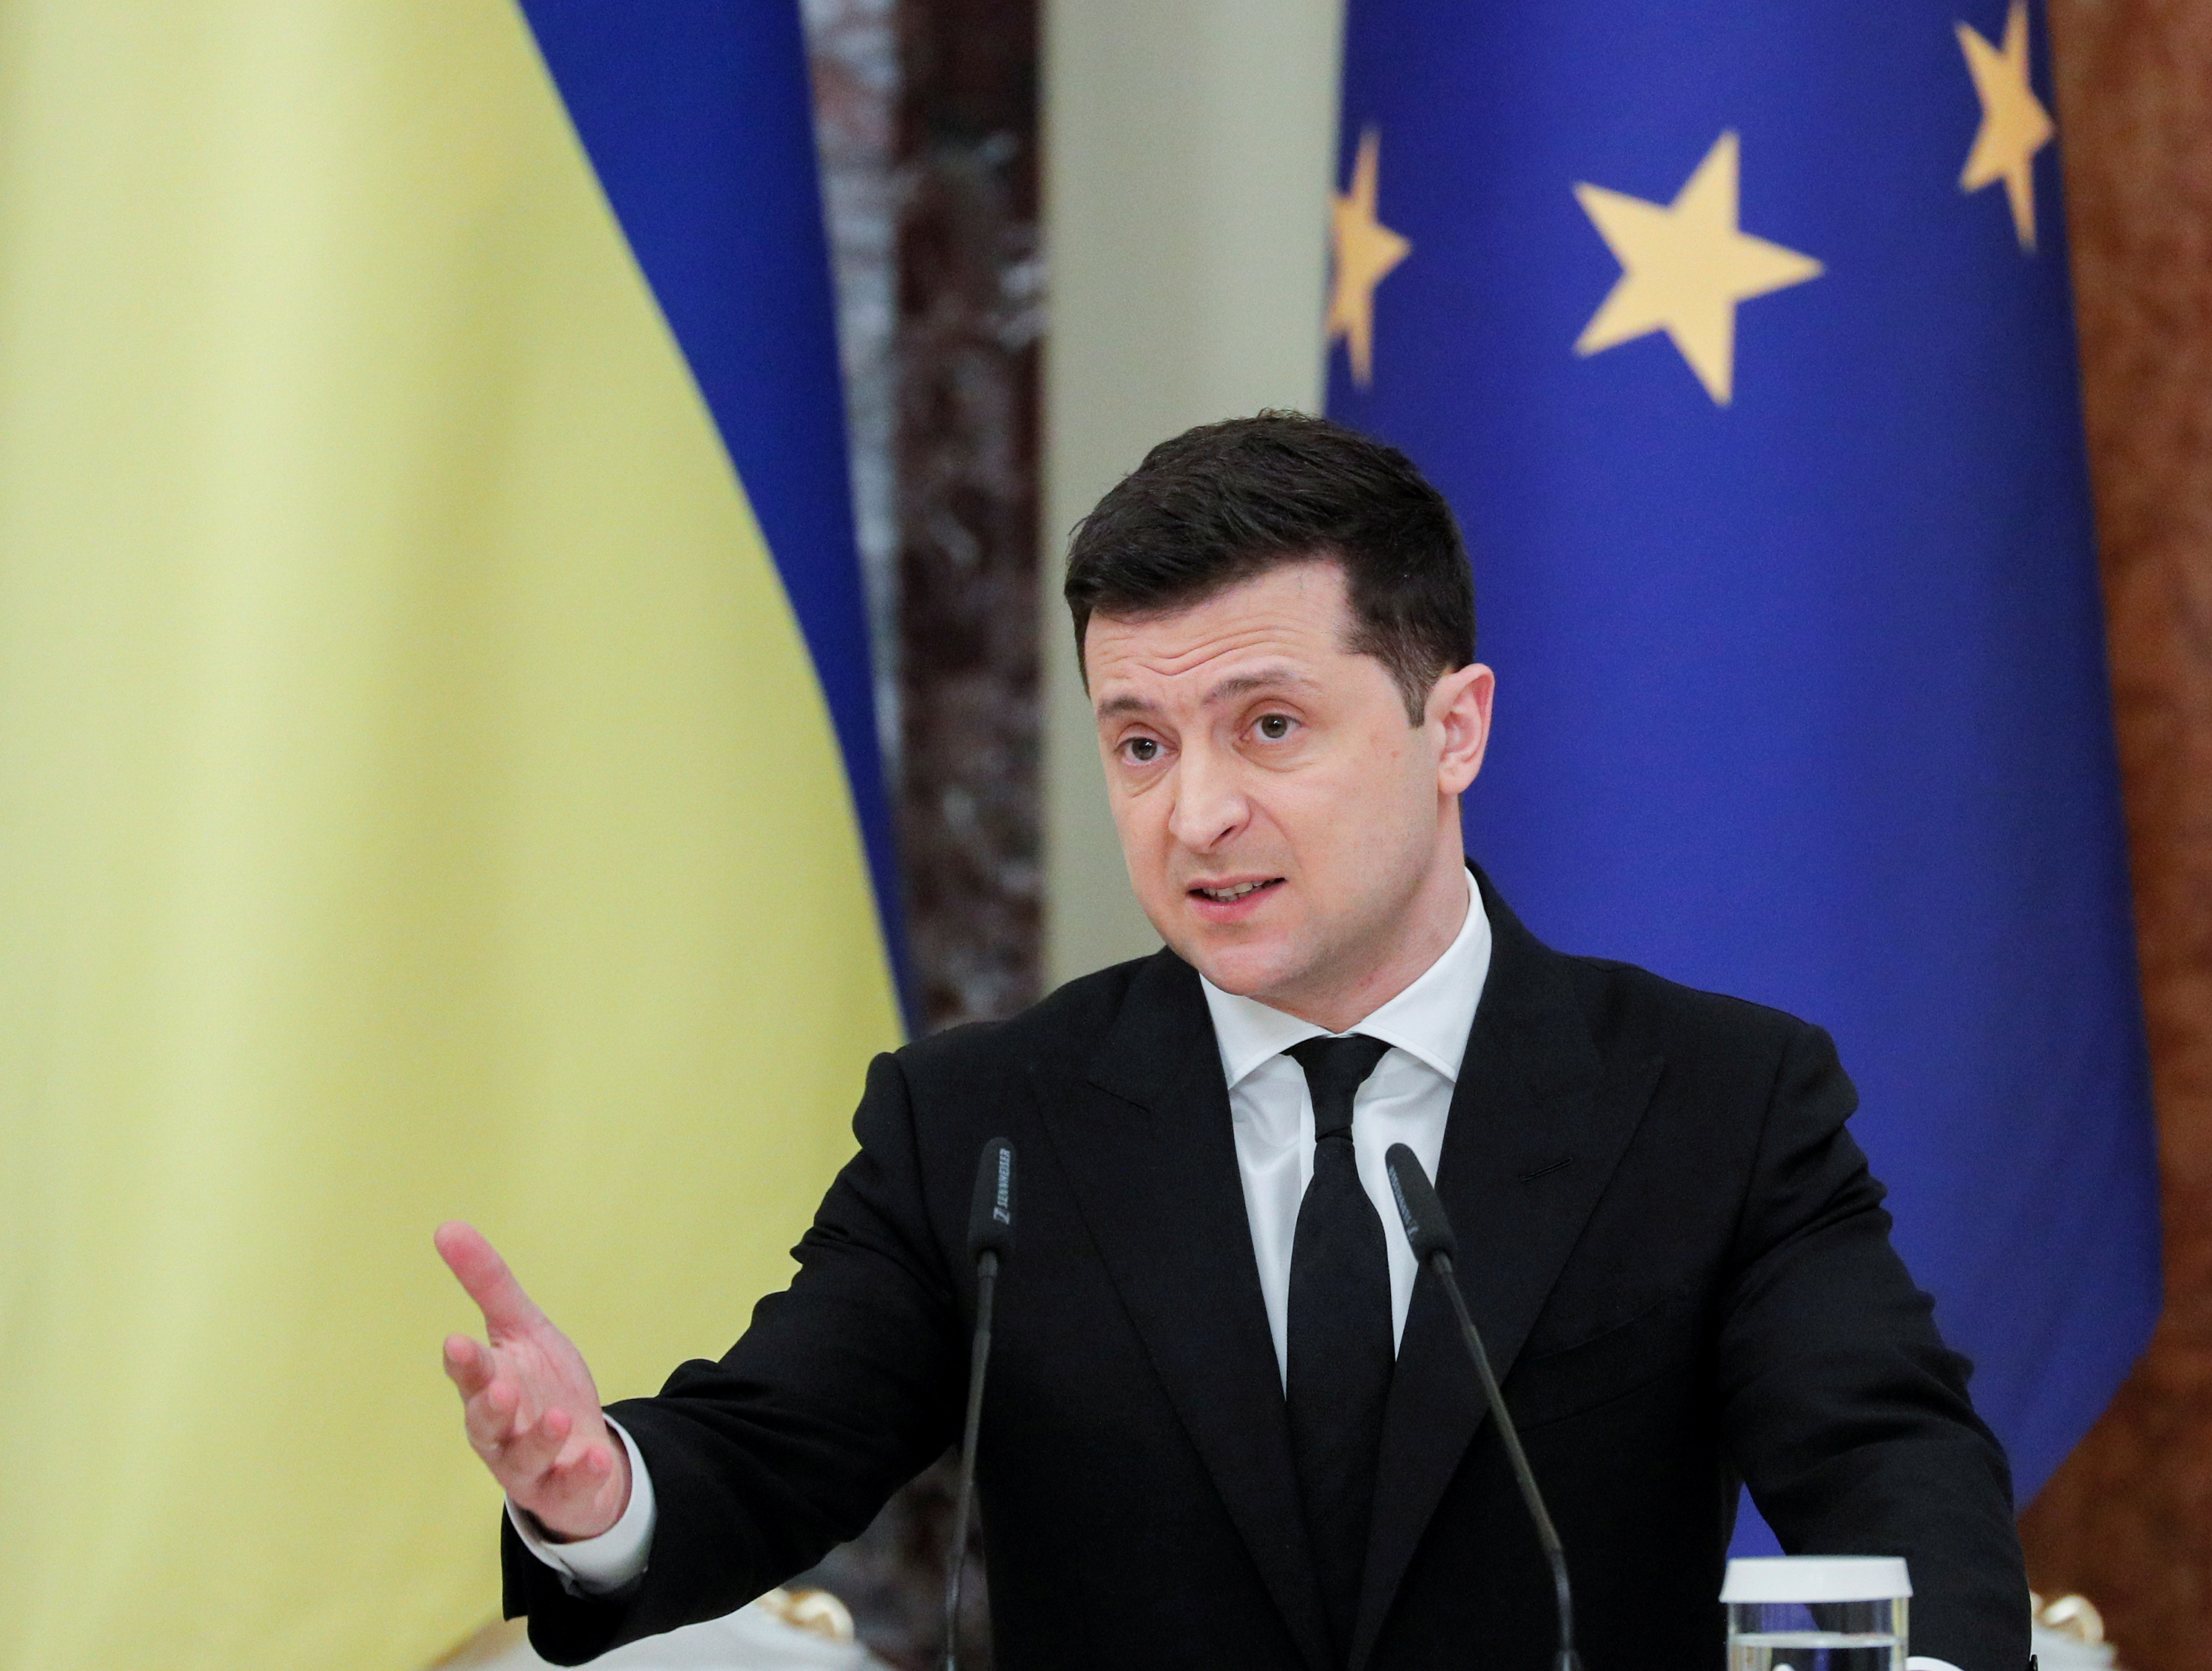 Ukrainian President Volodymyr Zelenskiy speaks during a joint news conference with European Council President Charles Michel in Kyiv, Ukraine March 3, 2021. Sergey Dolzhenko/Pool